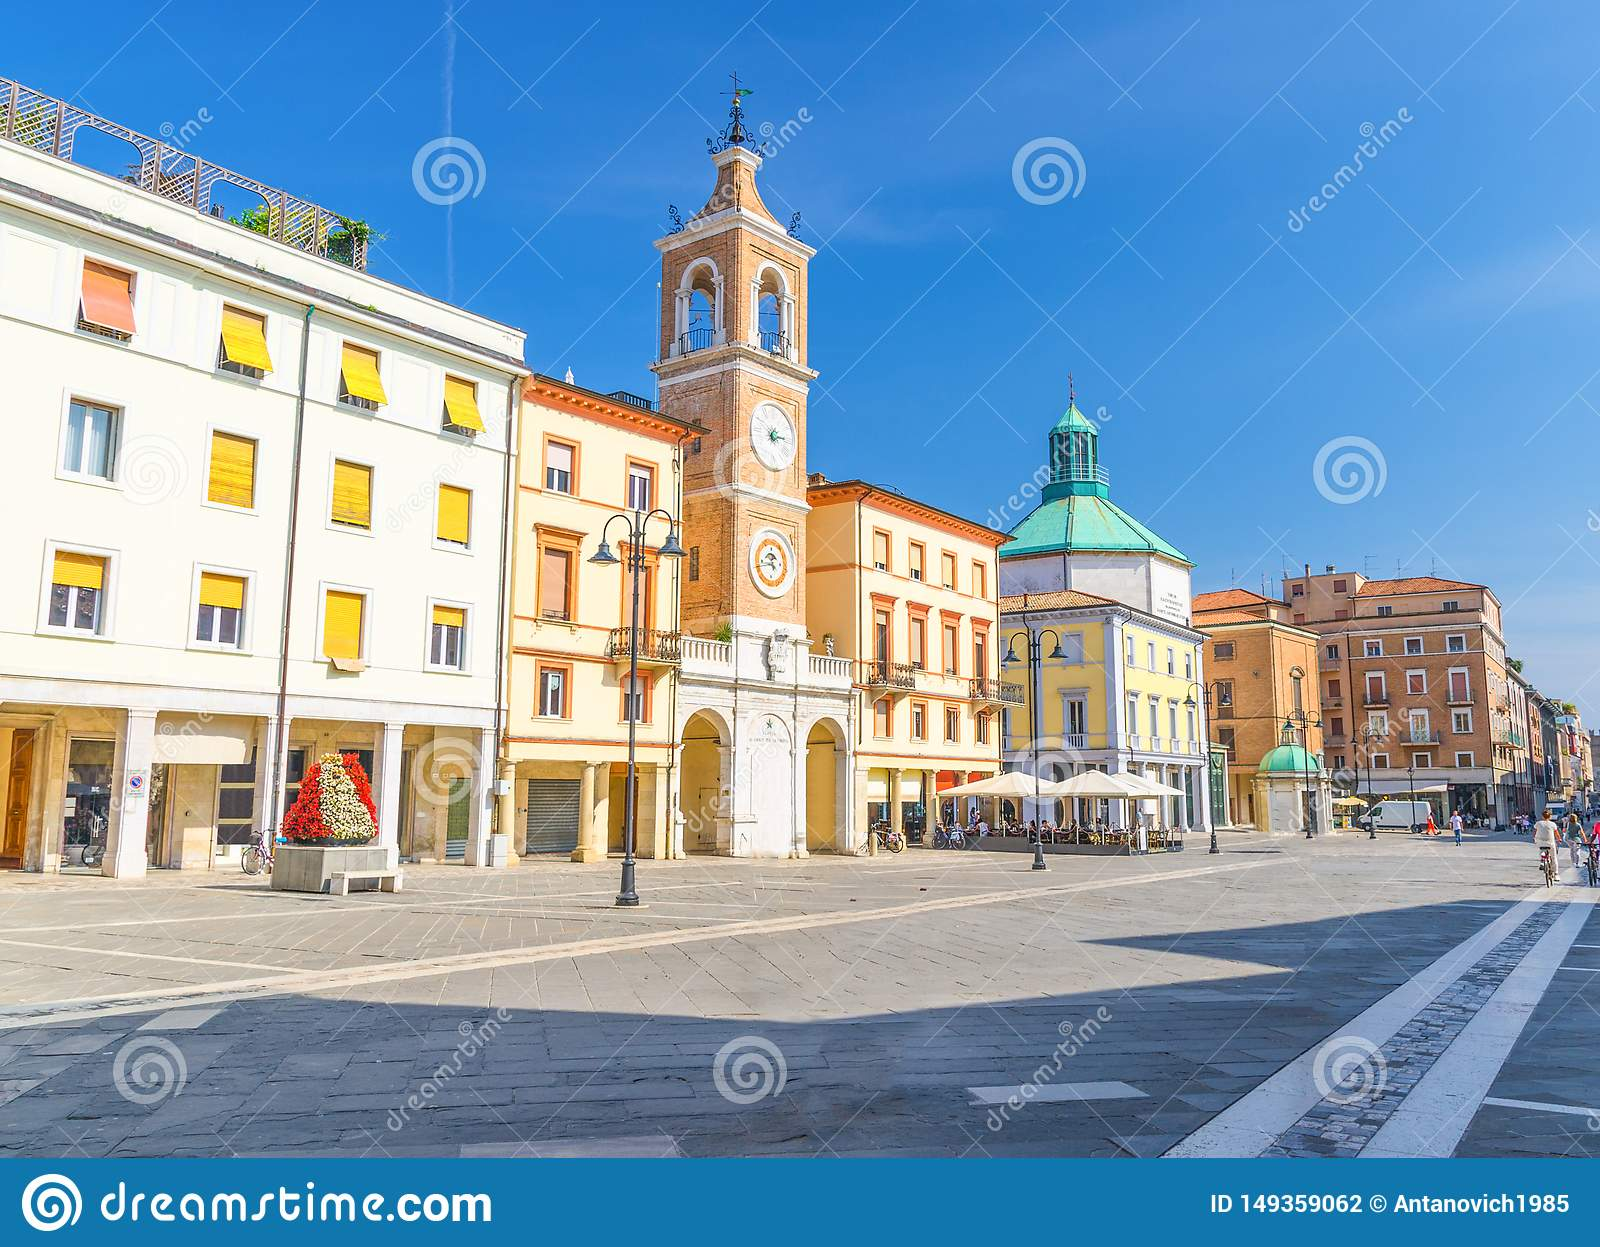 Piazza Tre Martiri Three Martyrs square with traditional buildings with clock and bell tower in Rimini